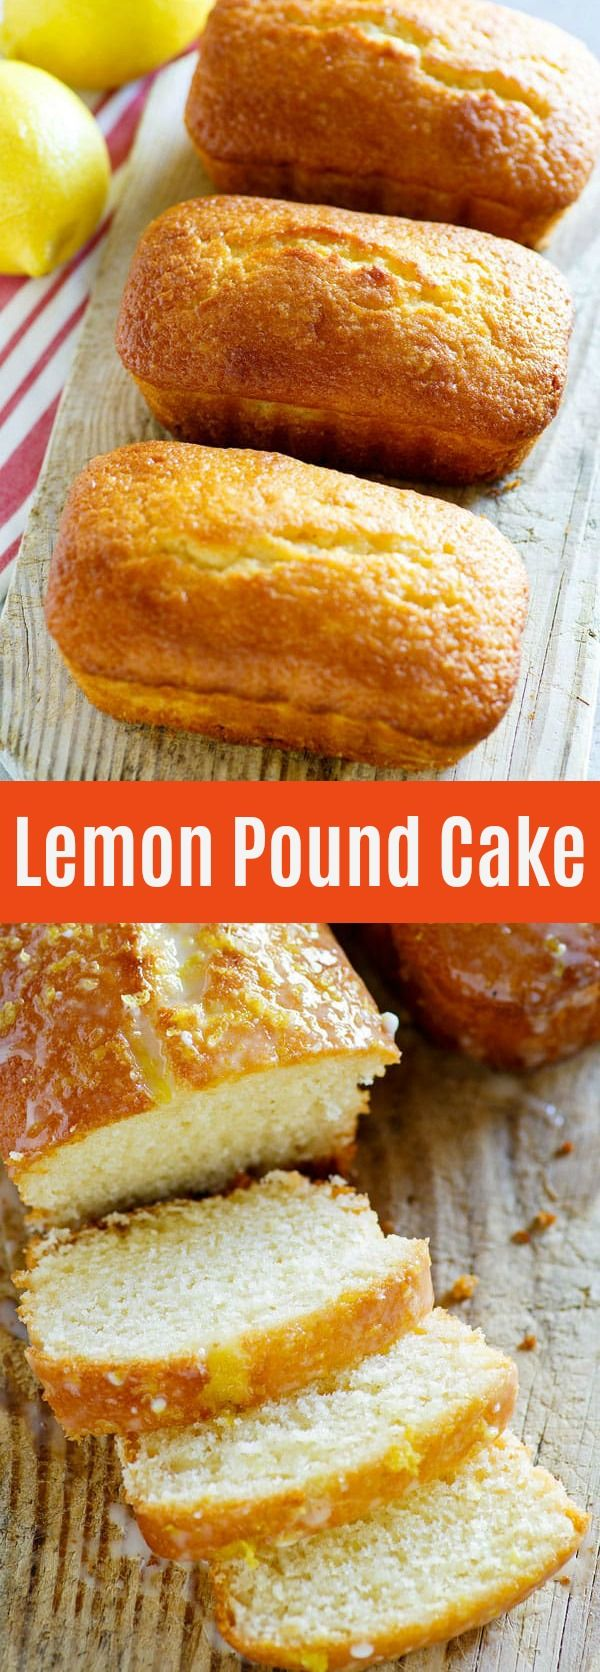 Lemon Pound Cake – buttery, sweet and lemony pound cake with sugary glaze. This lemon pound cake recipe is so good you'll want it every day | rasamalaysia.com